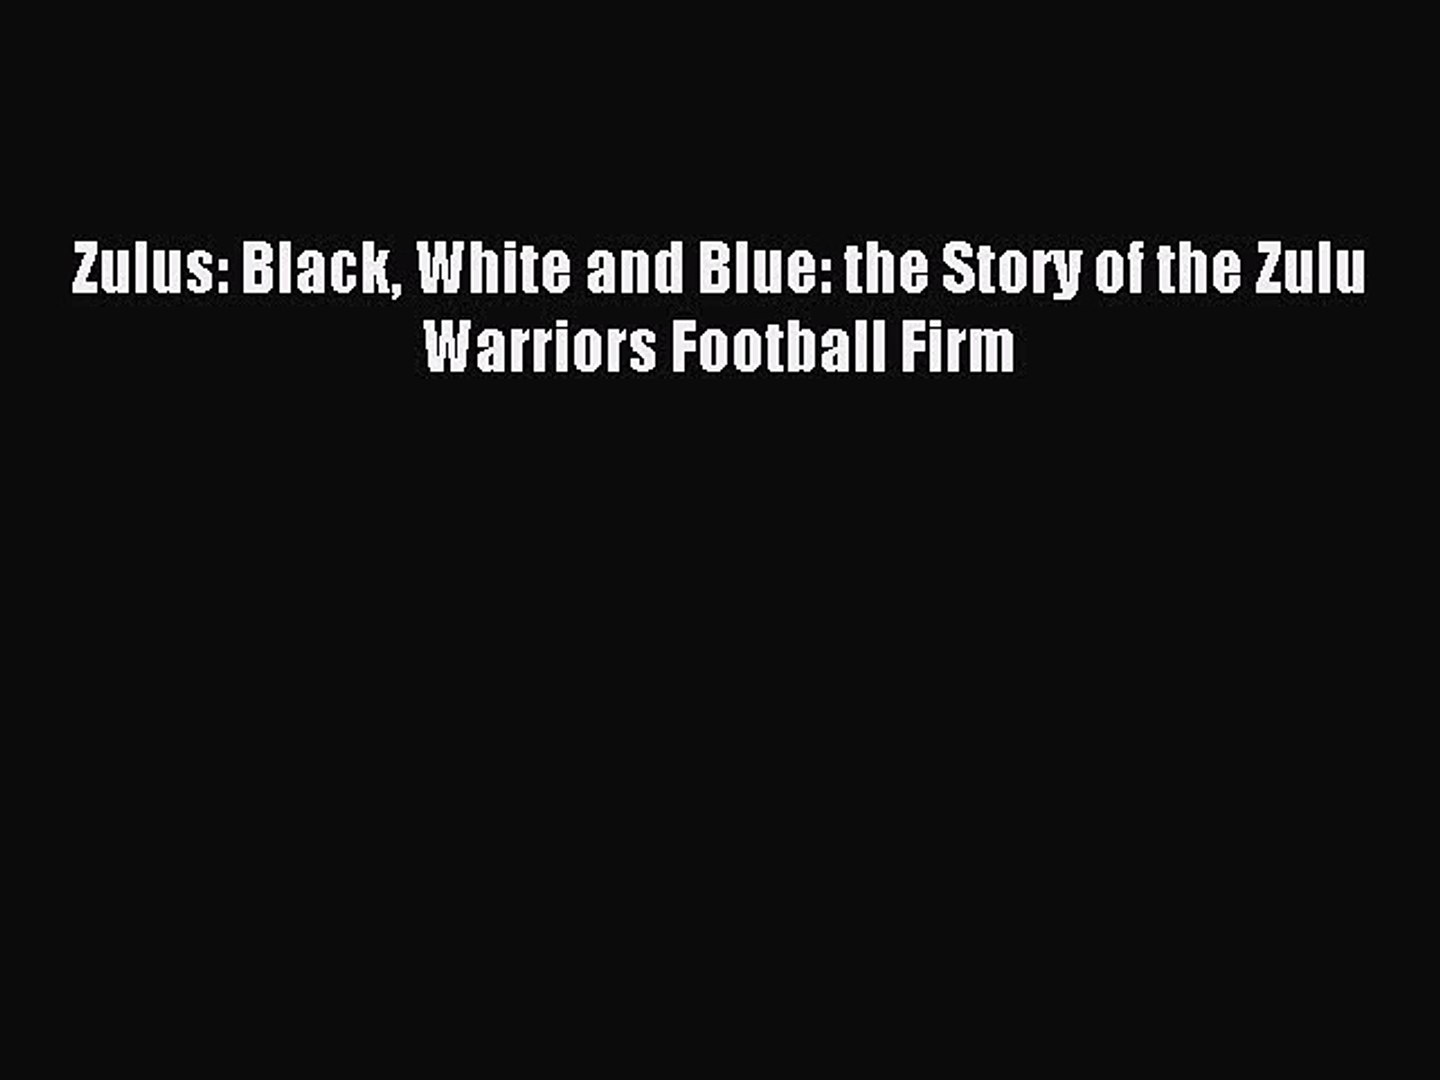 Read Zulus: Black White and Blue: the Story of the Zulu Warriors Football Firm Ebook Free